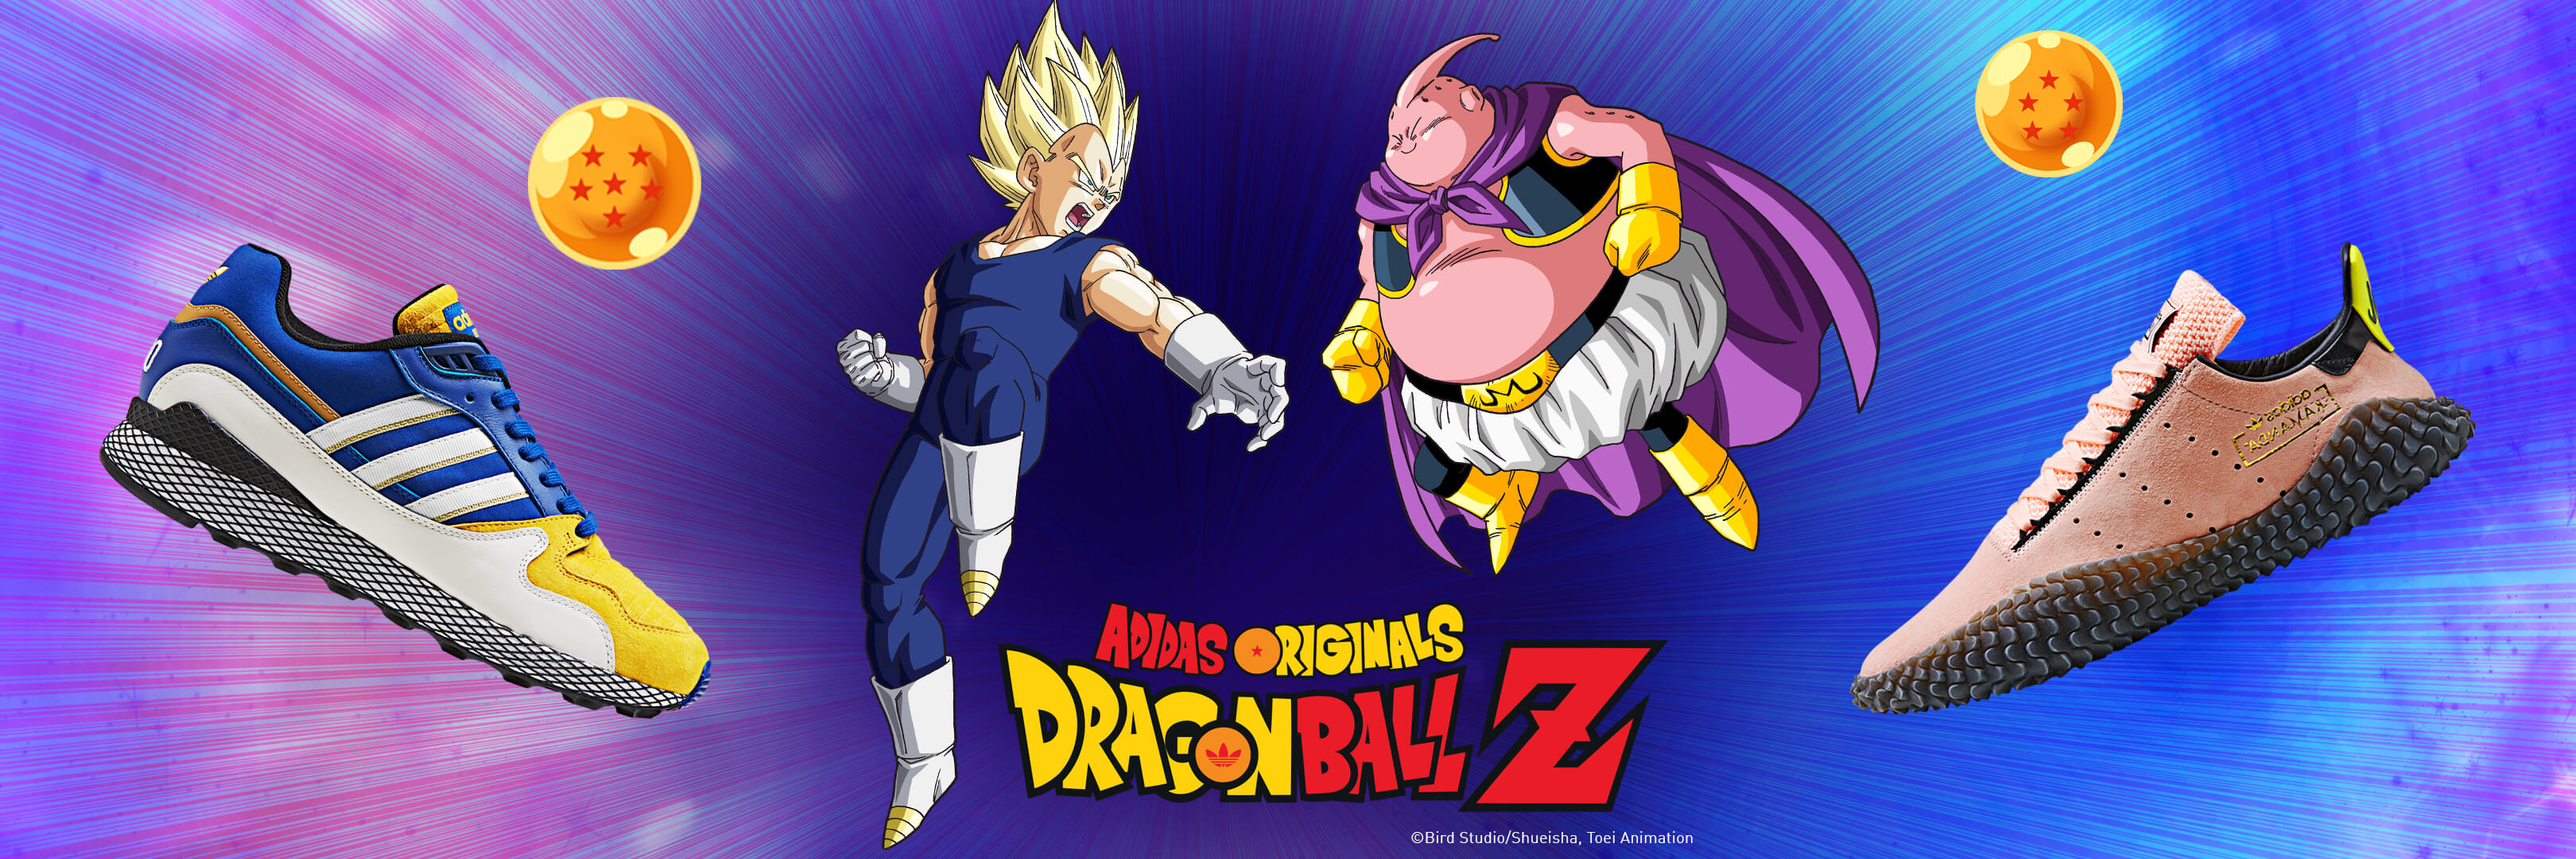 6479bd107 The next two pairs fans can look forward to are the OREGON ULTRA TECH DB s  and KAMANDA 01 DB s inspired by Vegeta and Majin Buu respectively.